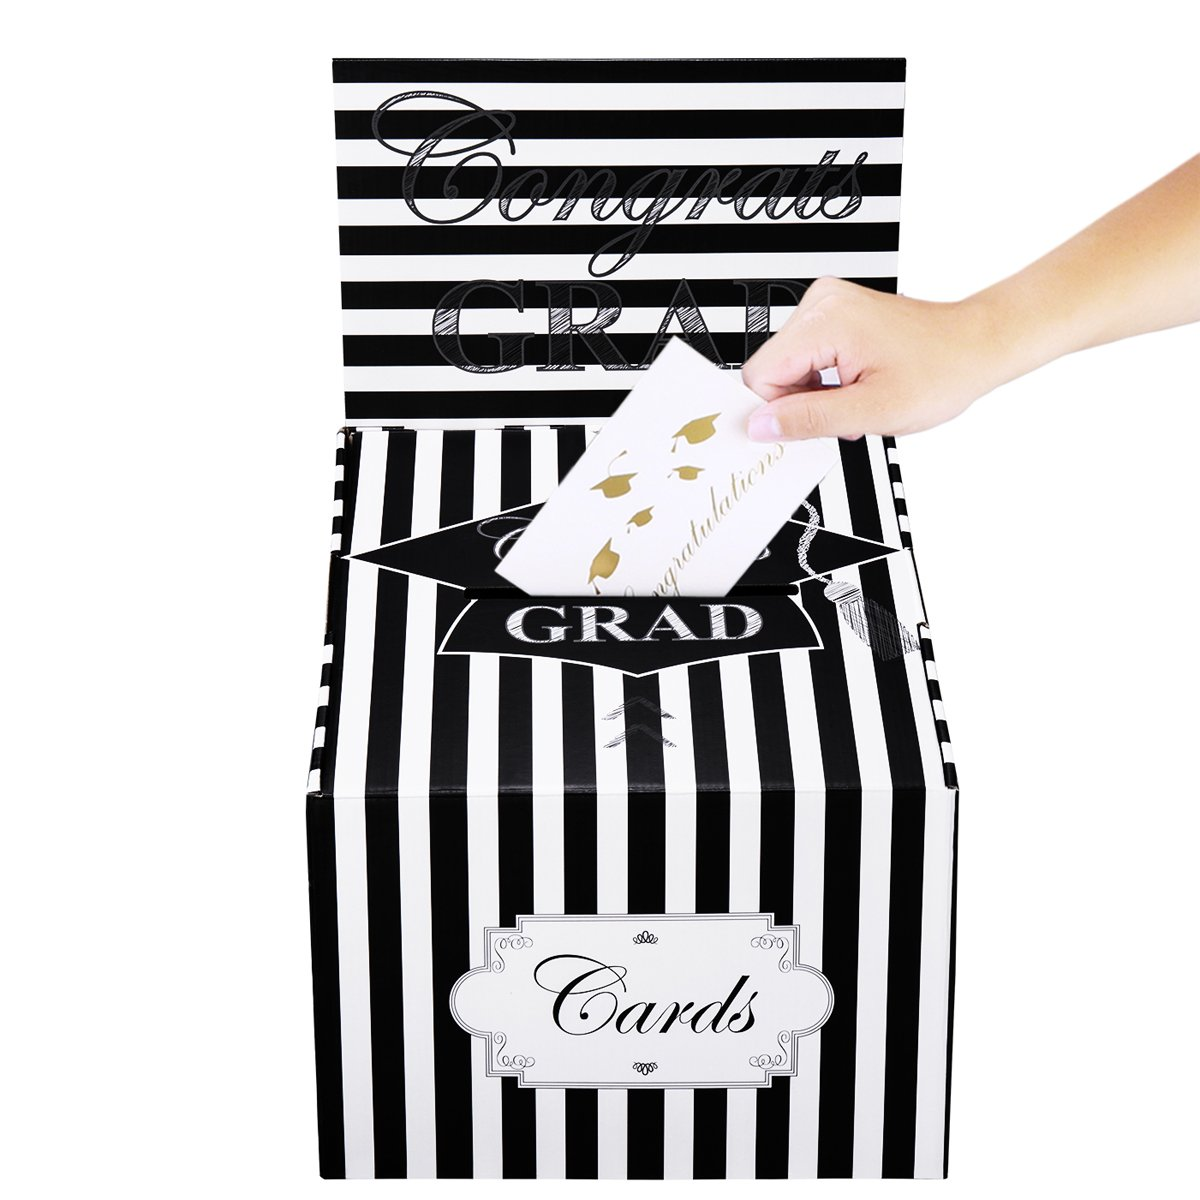 Cualfec Graduation Card Box Durable Graduation Greeting Card Holder 12''x12''x12''x 8.5'' - Black & White Design